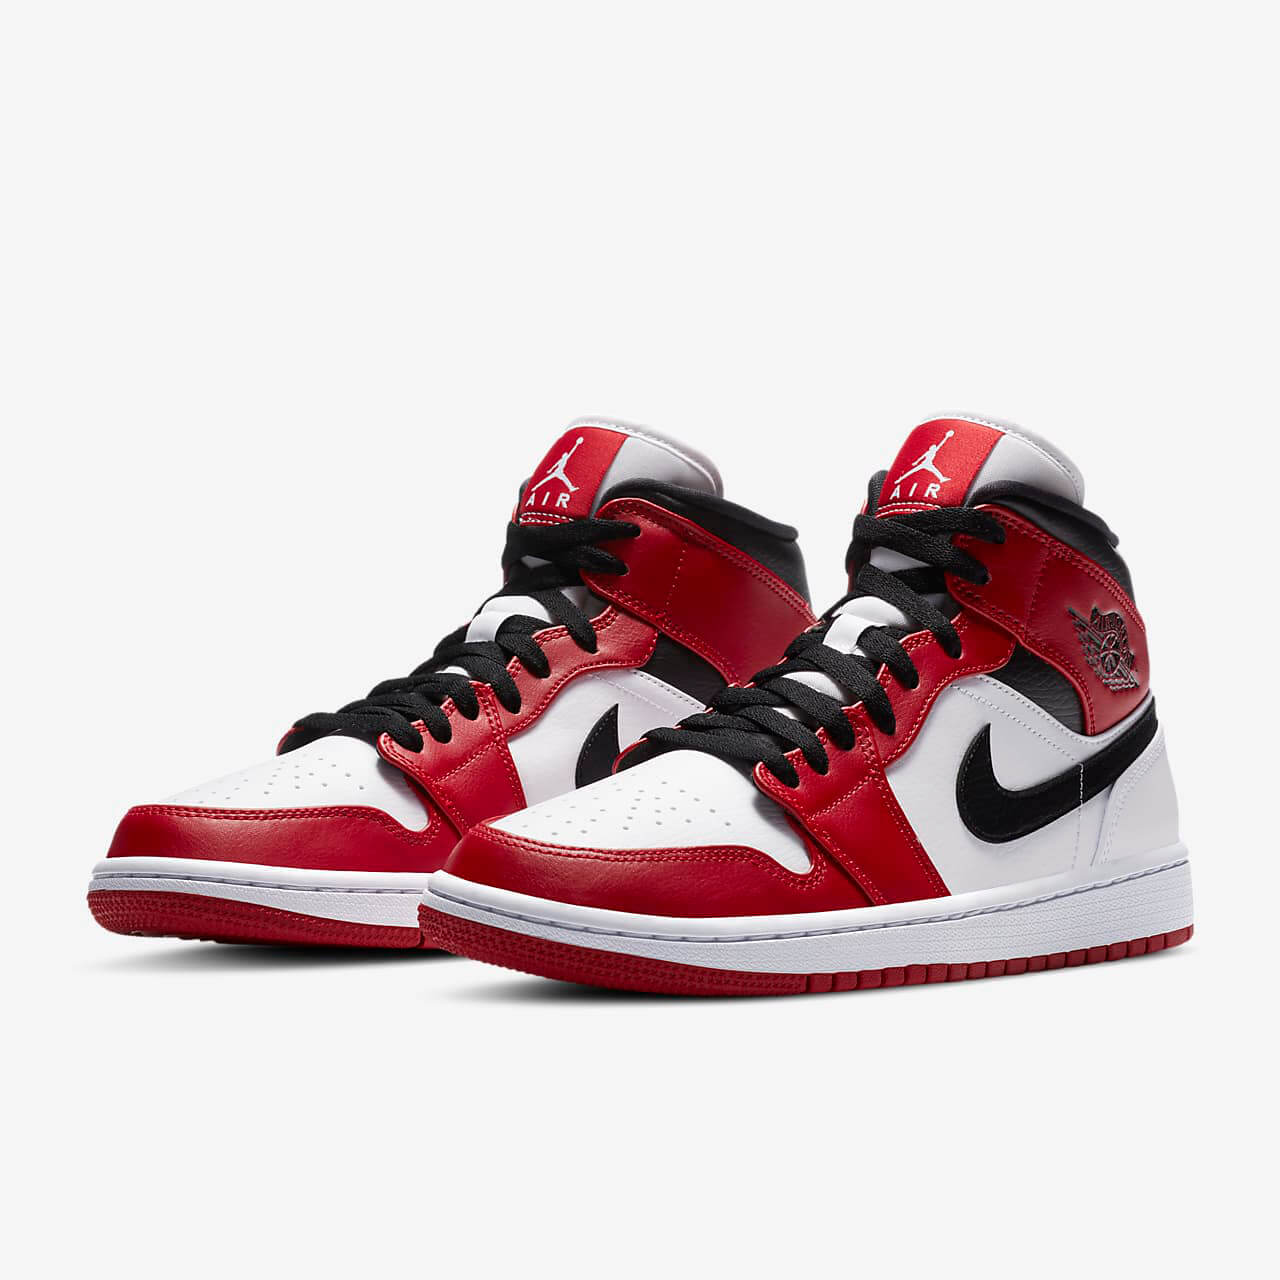 Chaussures Nike Air Jordan 1 Mid Chicago 2020 France